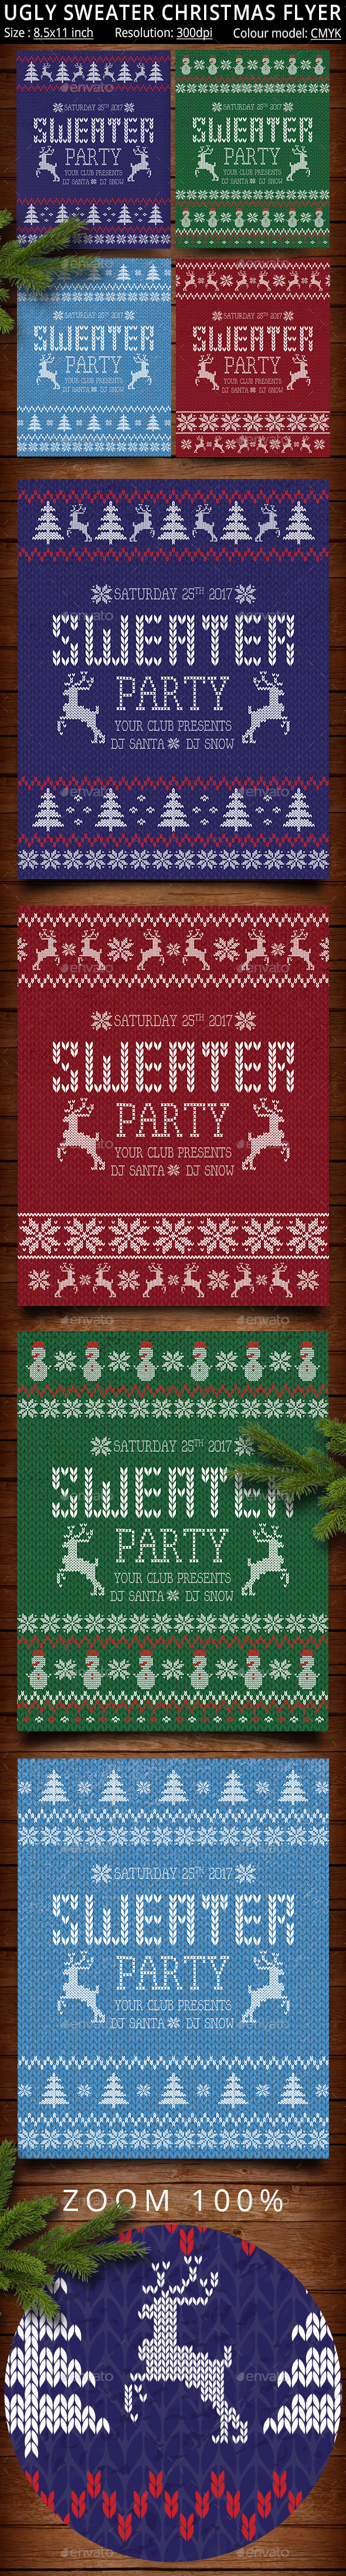 GraphicRiver Ugly Sweater Christmas Party Poster 20541618